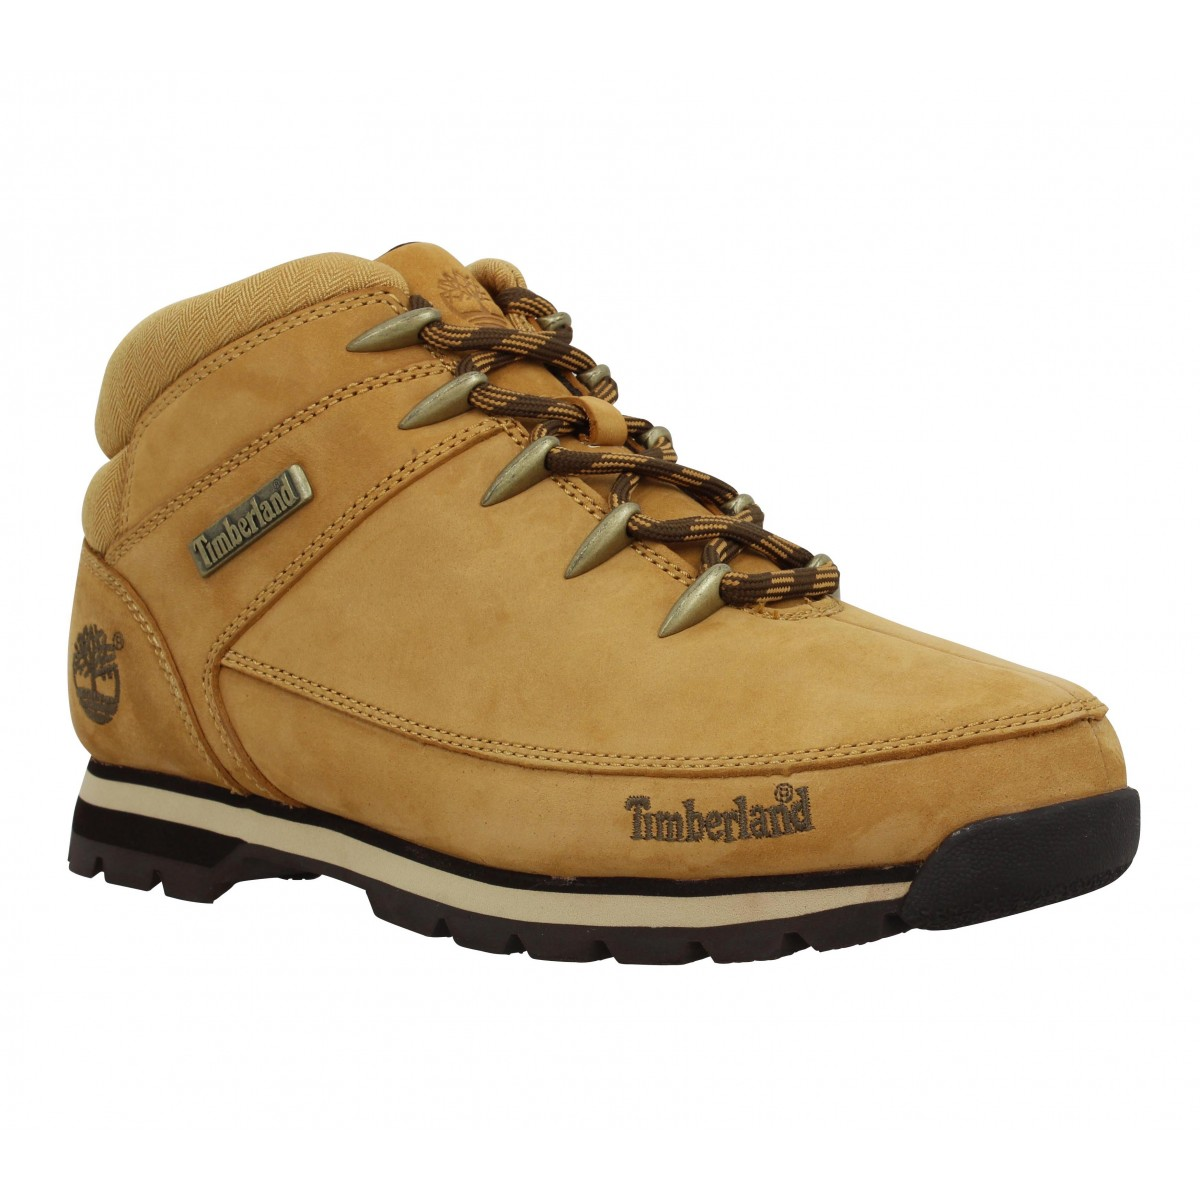 Bottines TIMBERLAND Euro Sprint velours Homme Ocre